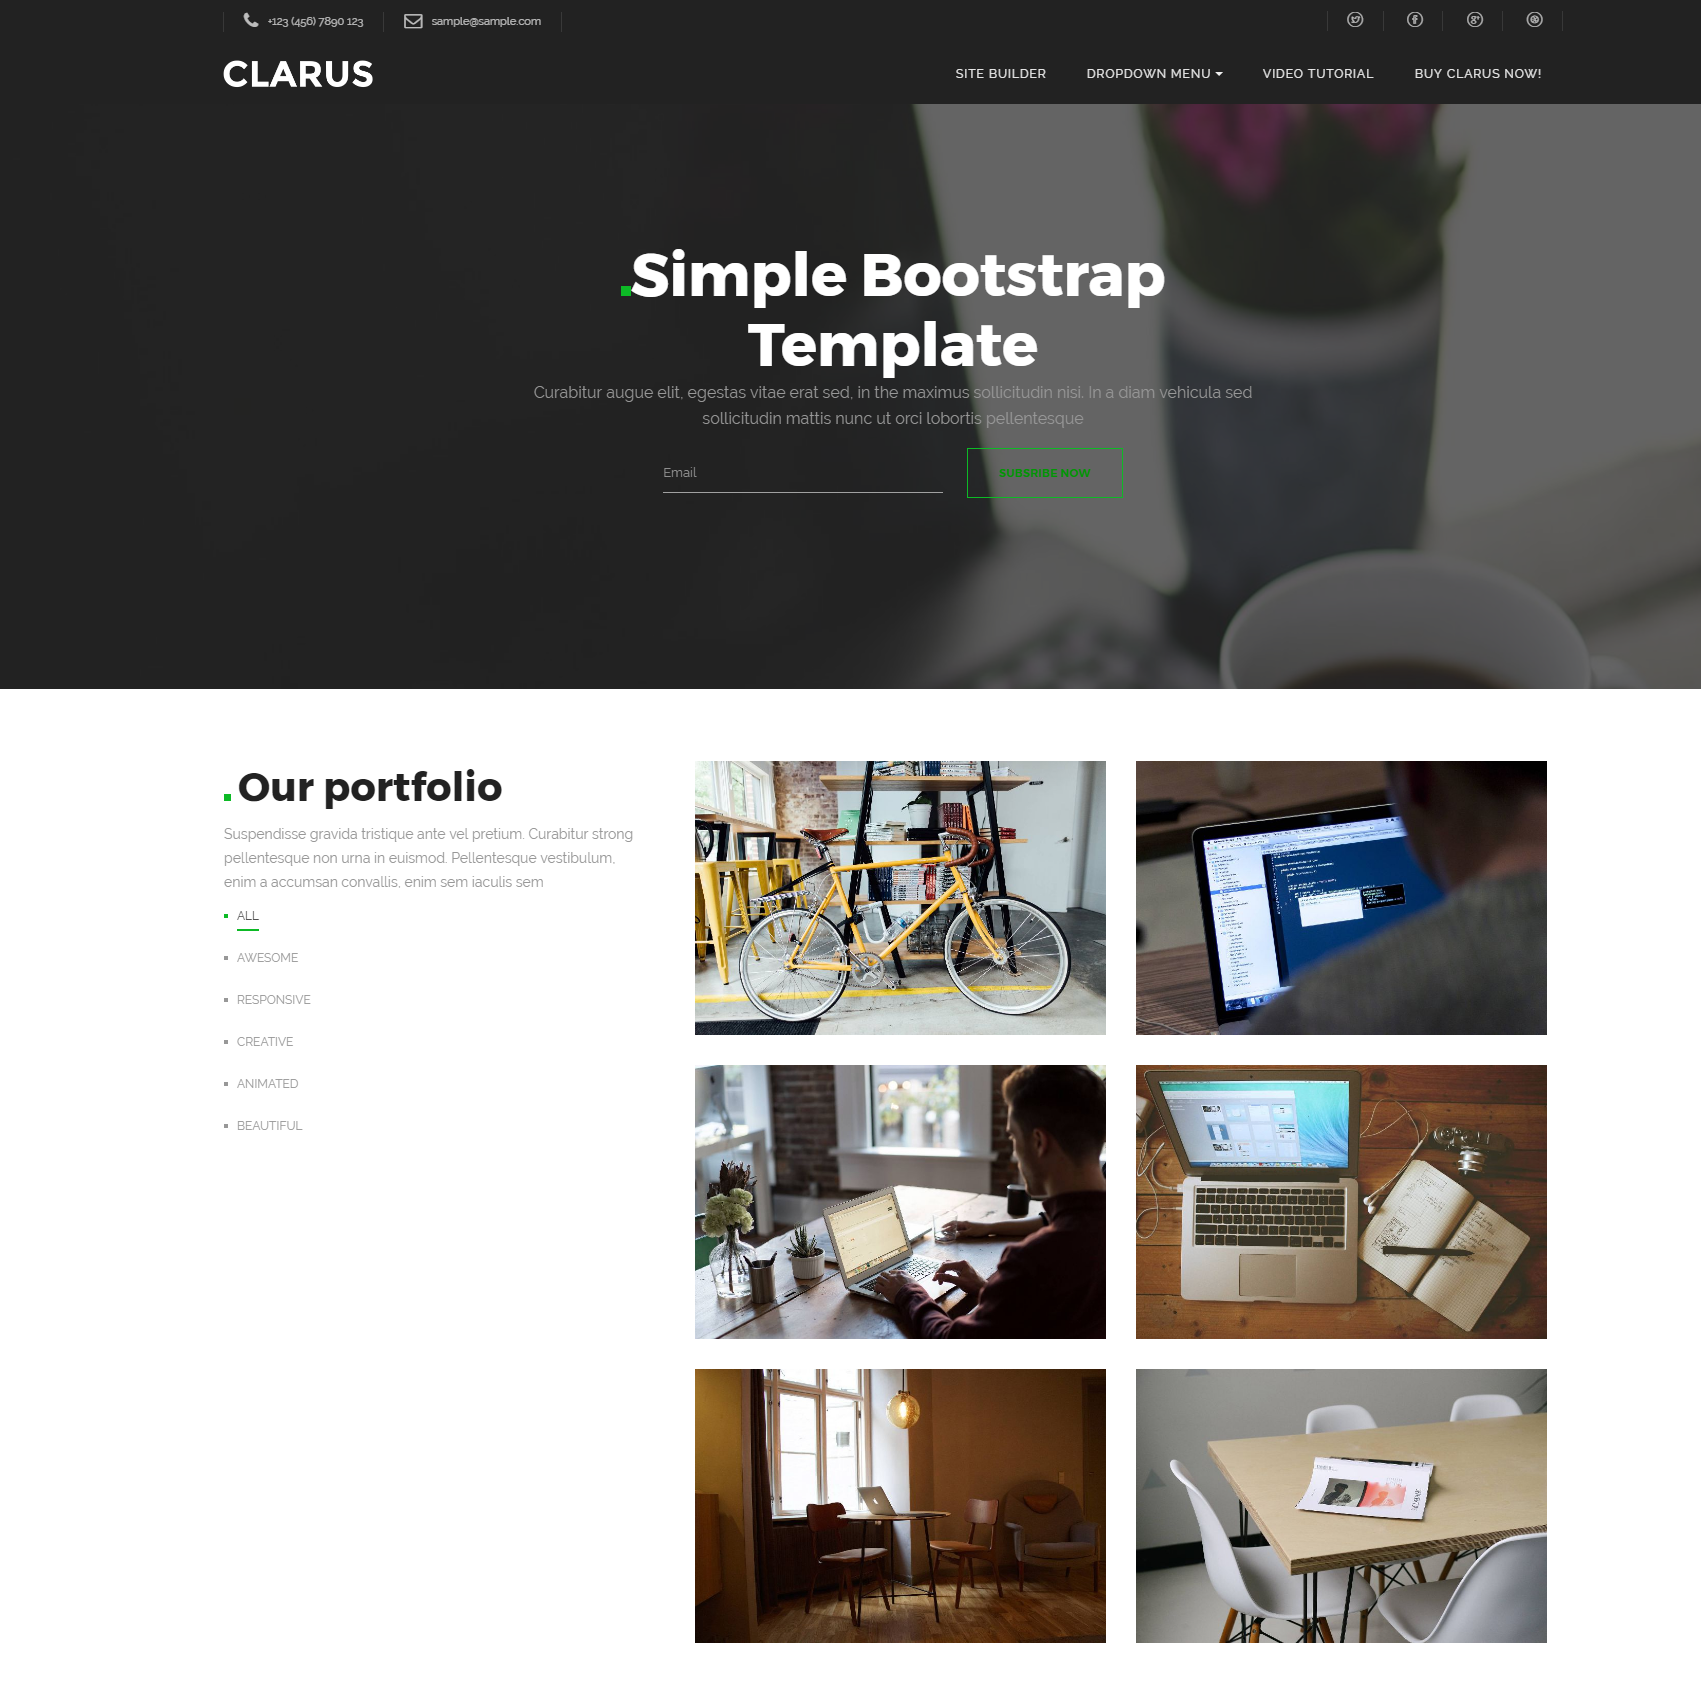 Free Bootstrap Simple Templates